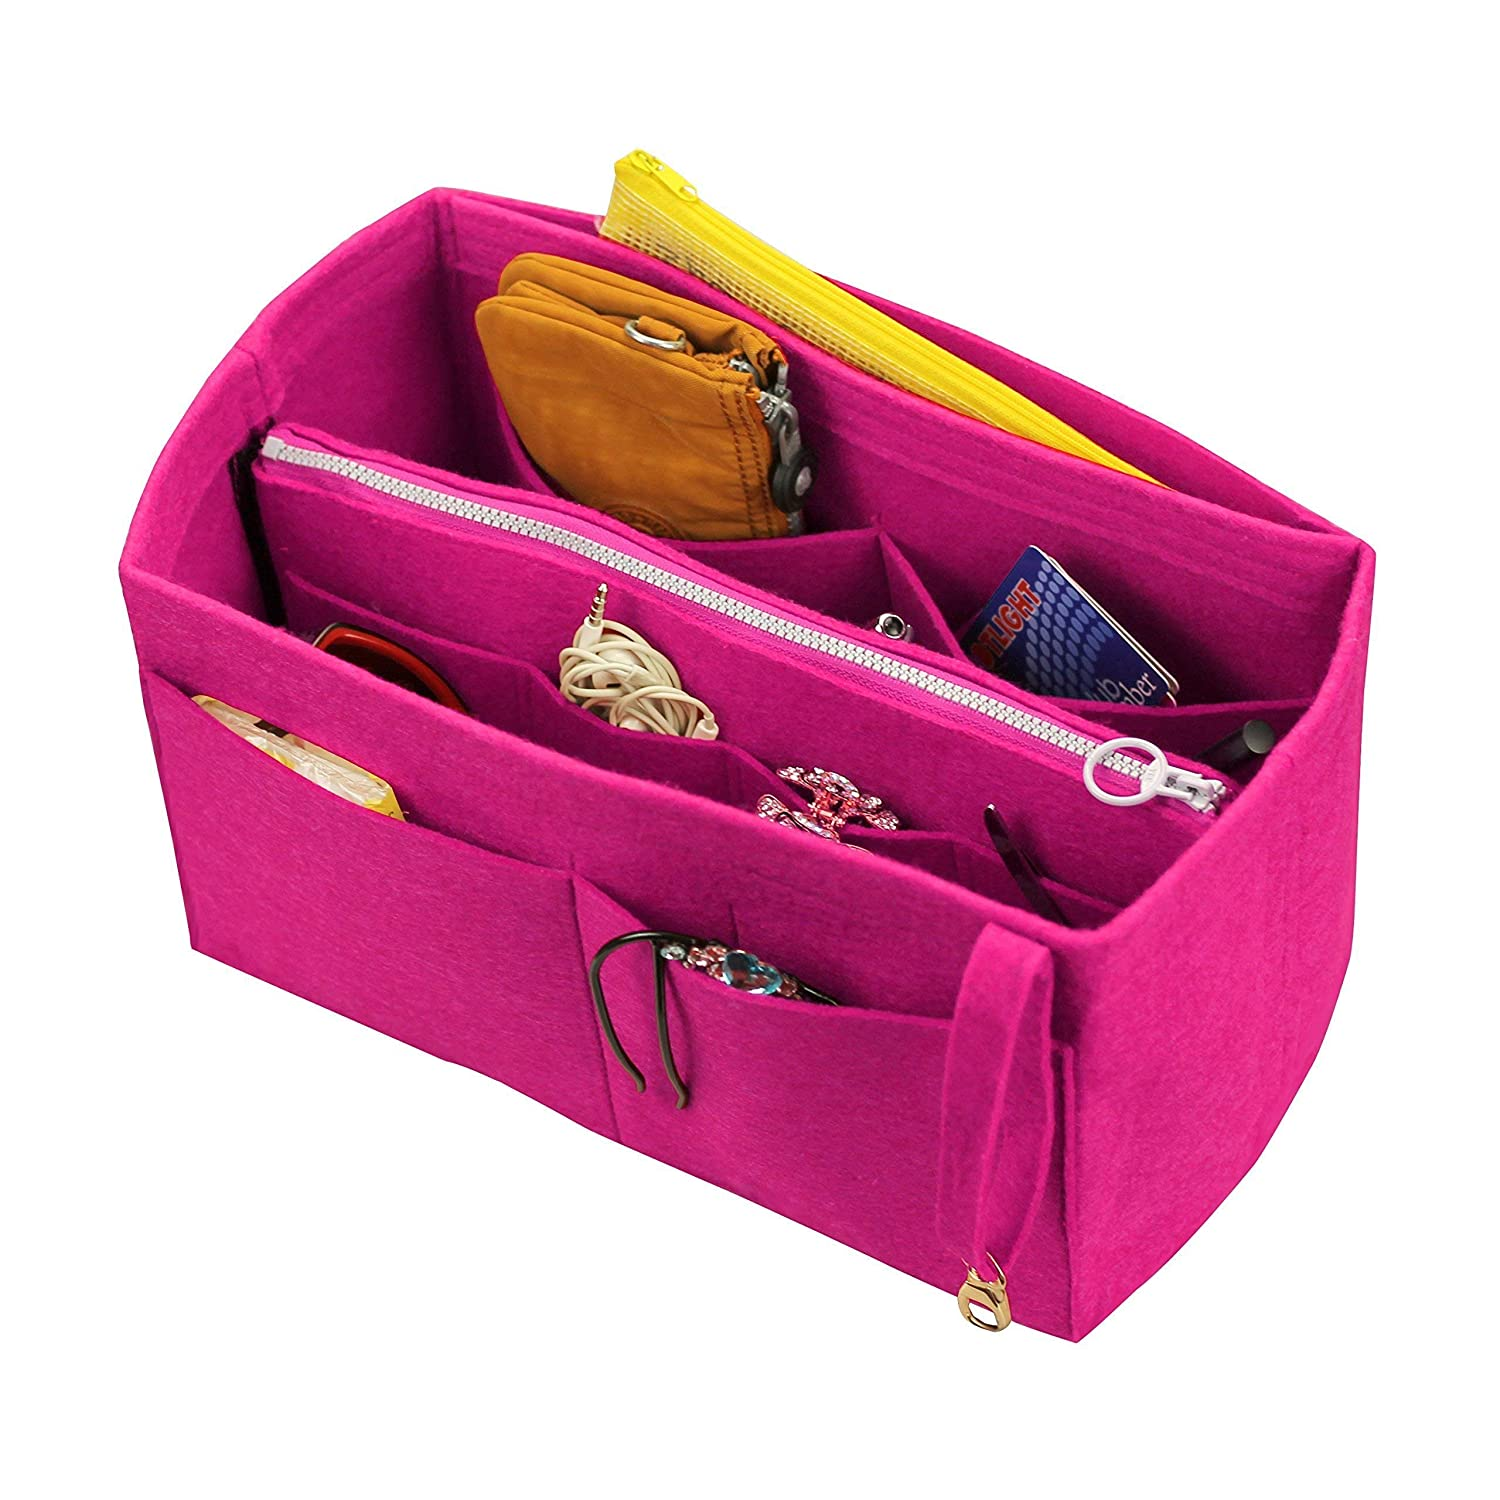 [Fits Neverfull PM/Speedy 25, Pivoine] Felt Organizer (with Detachable Middle Zipper Bag), Bag in Bag, Wool Purse Insert, Customized Tote Organize, Cosmetic Makeup Diaper Handbag